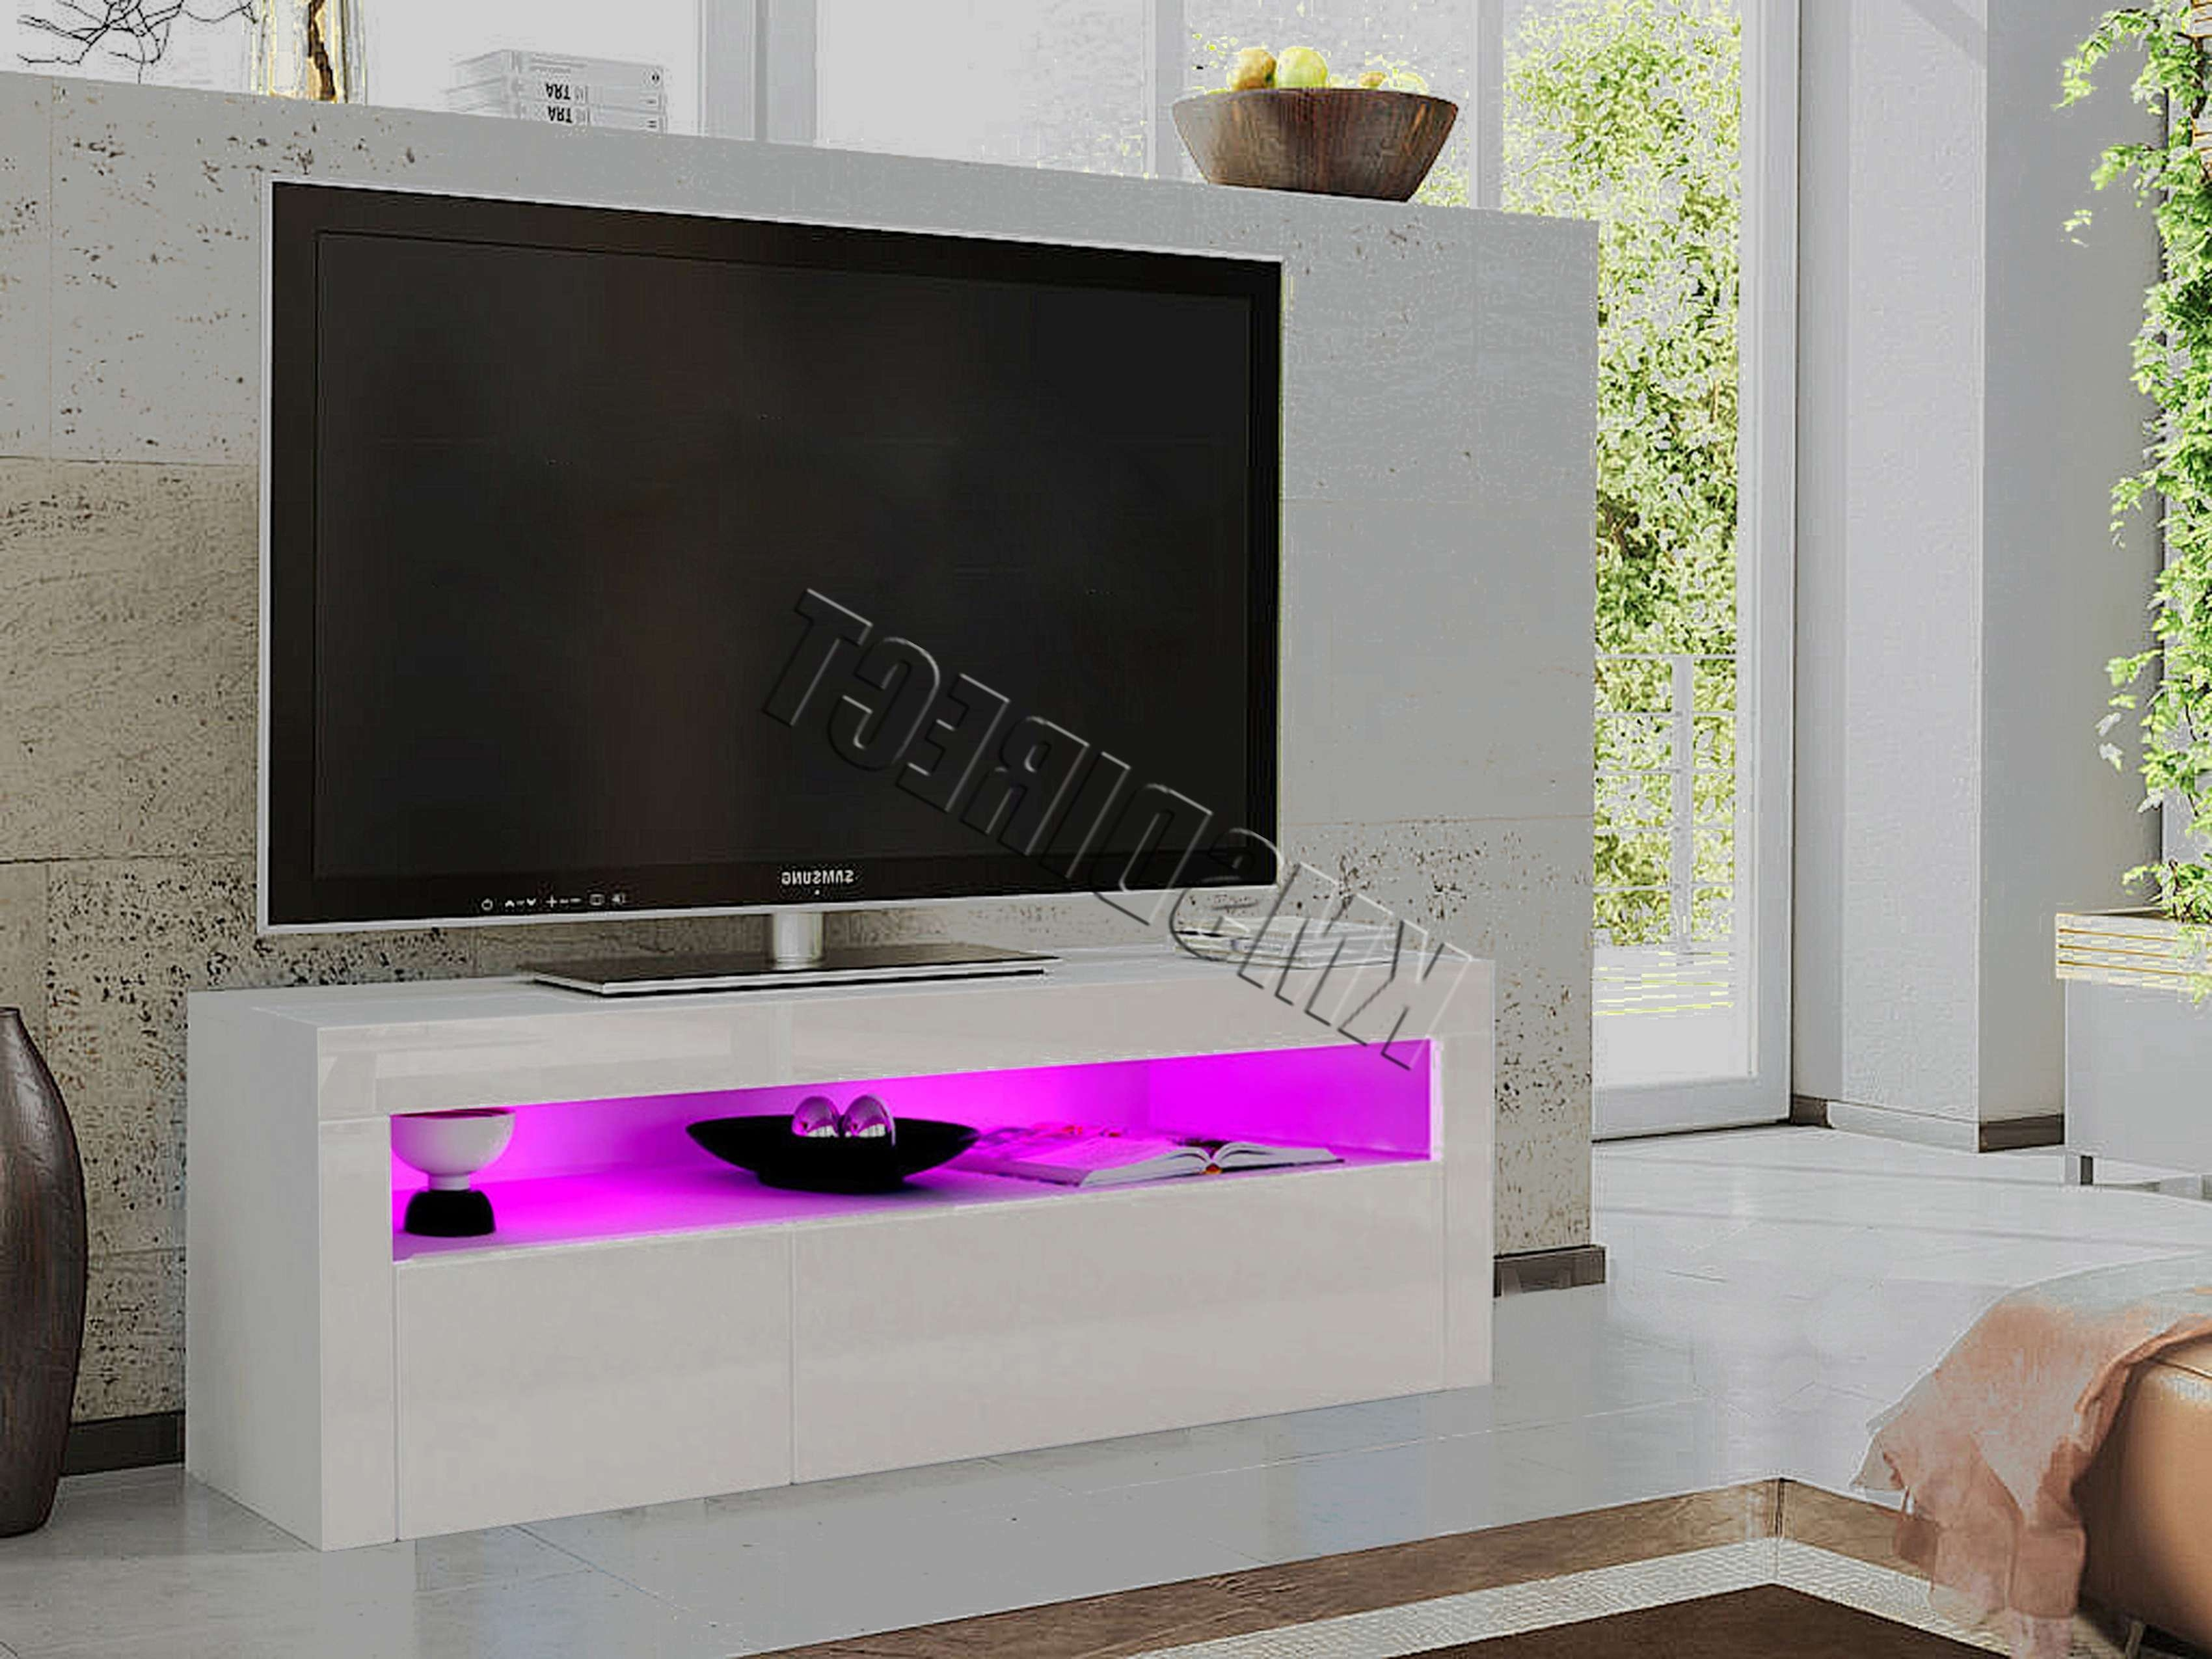 Foxhunter Modern High Gloss Matt Tv Cabinet Unit Stand White Rgb With Regard To White High Gloss Tv Stands (View 7 of 15)